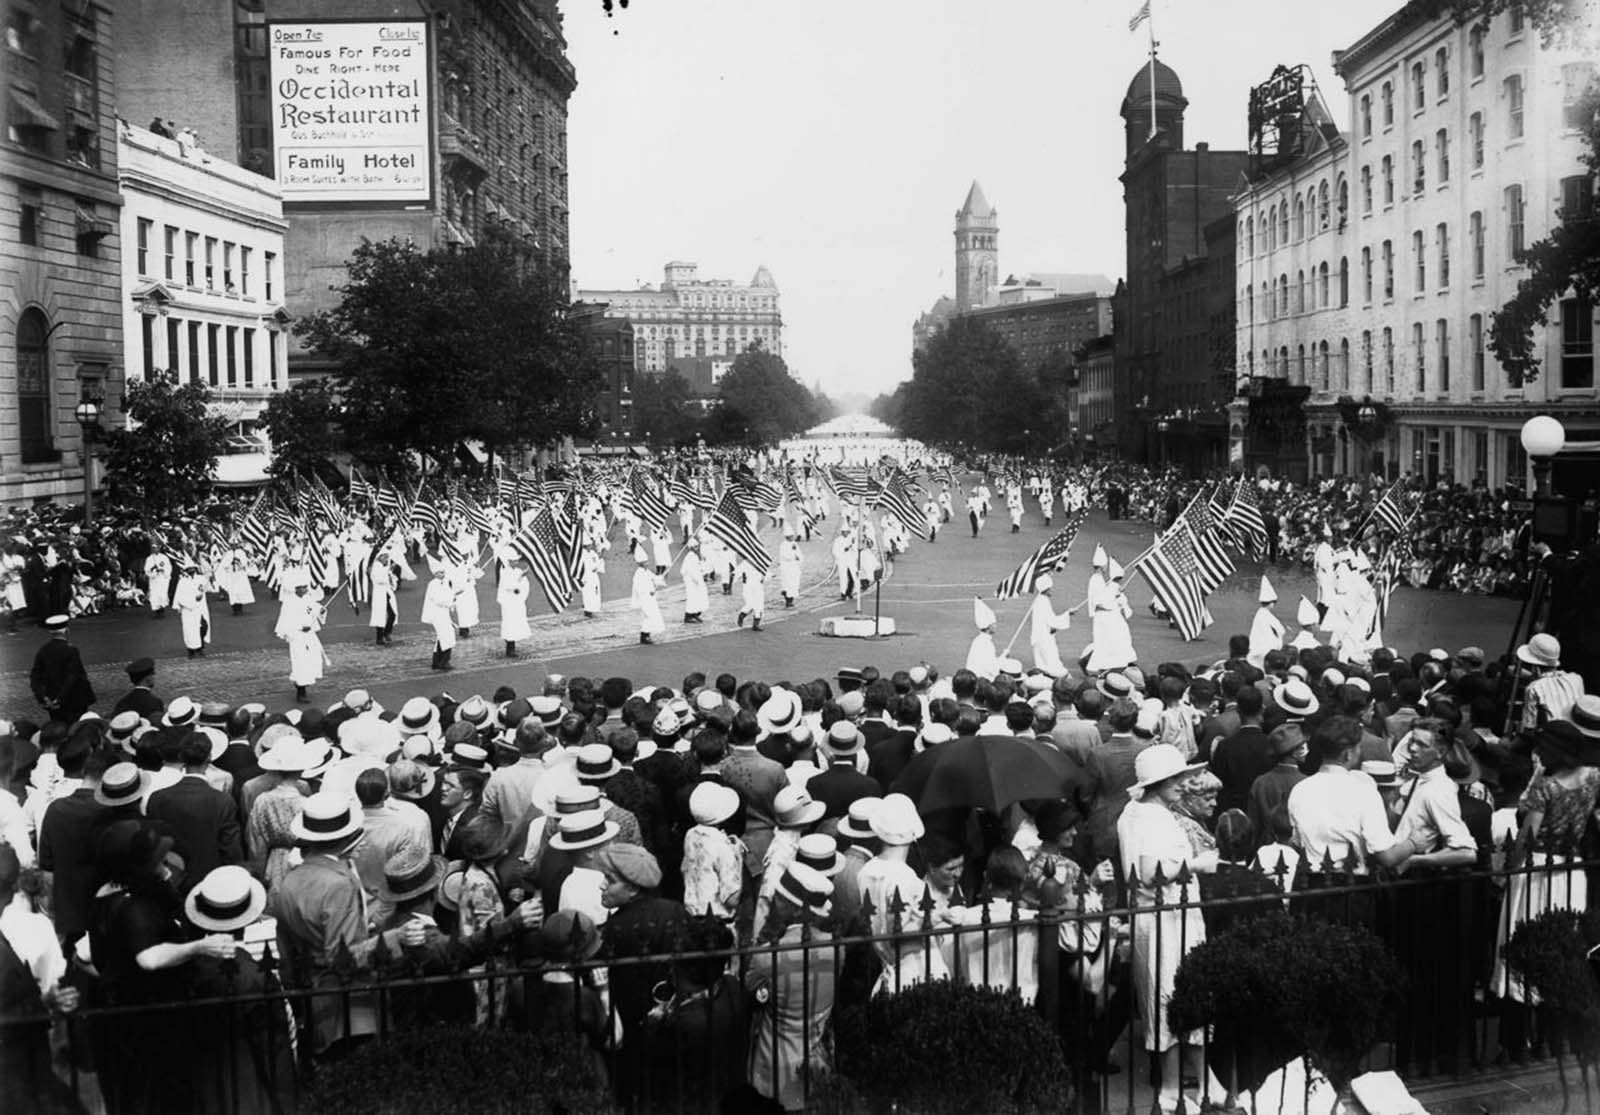 In 1925 and 1926, the Klan descended on Washington, D.C. for two massive marches.